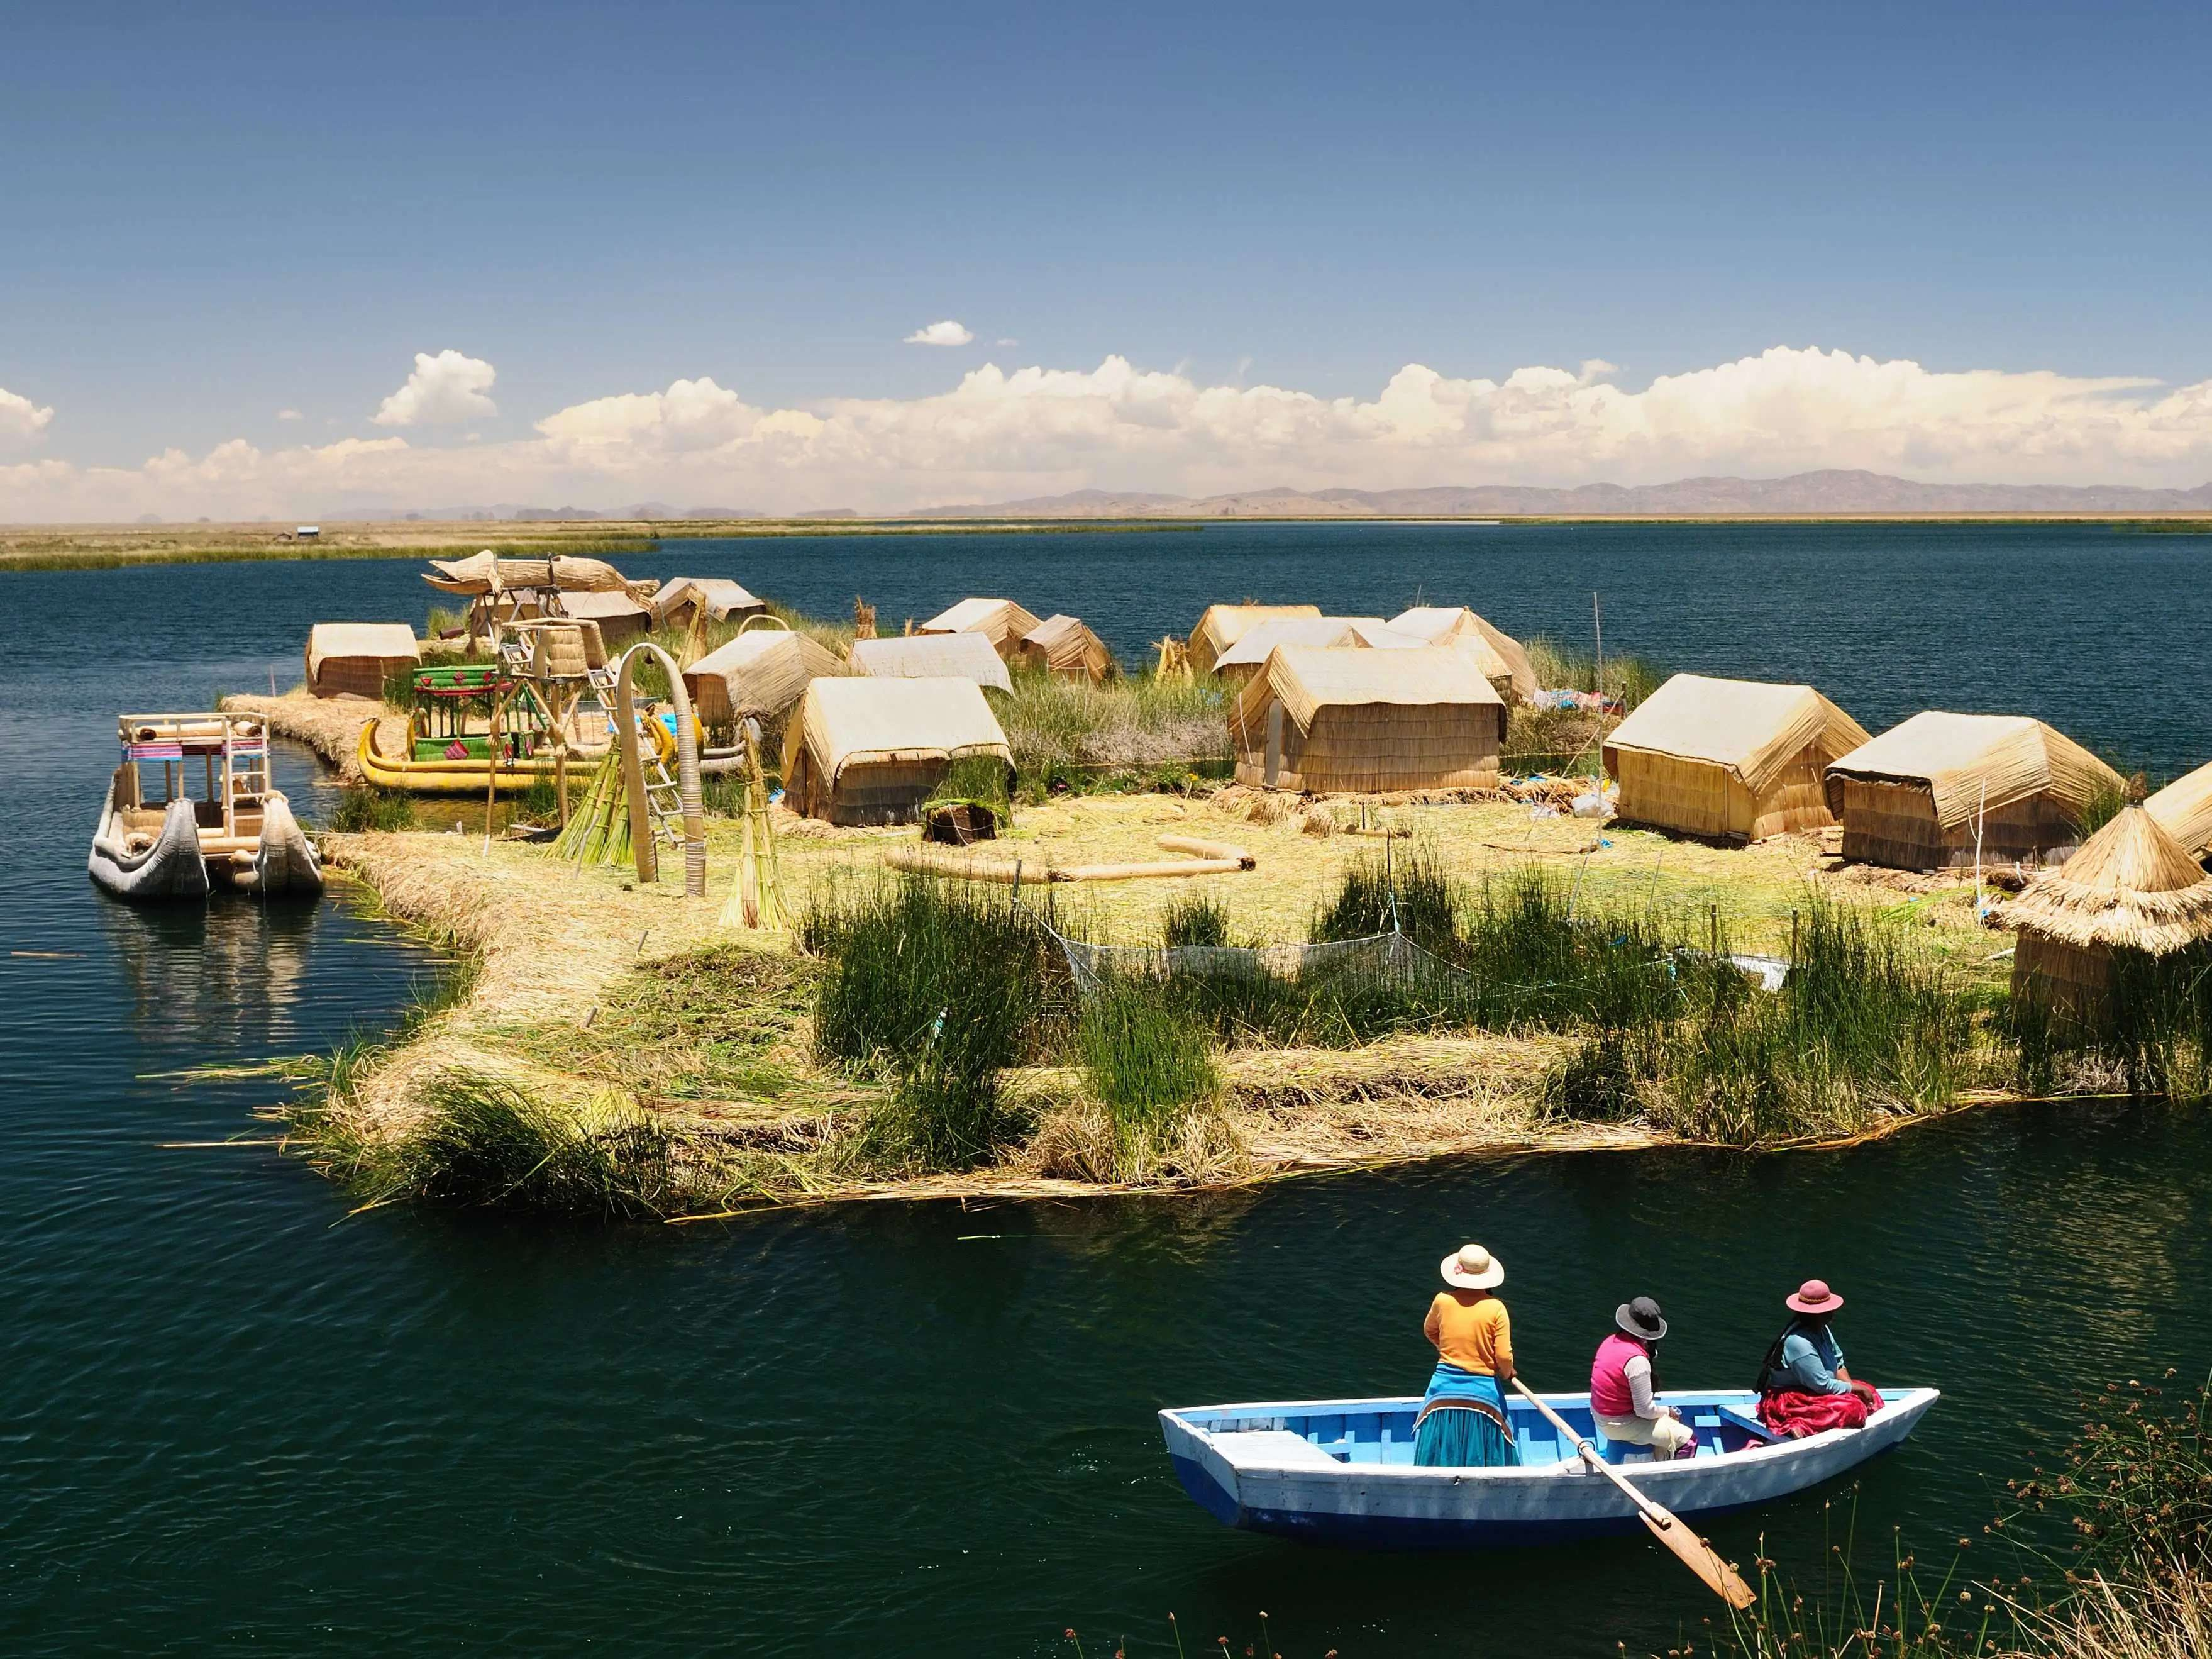 Step onto the floating islands of Lake Titicaca, which are still inhabited by the indigenous Uros people.